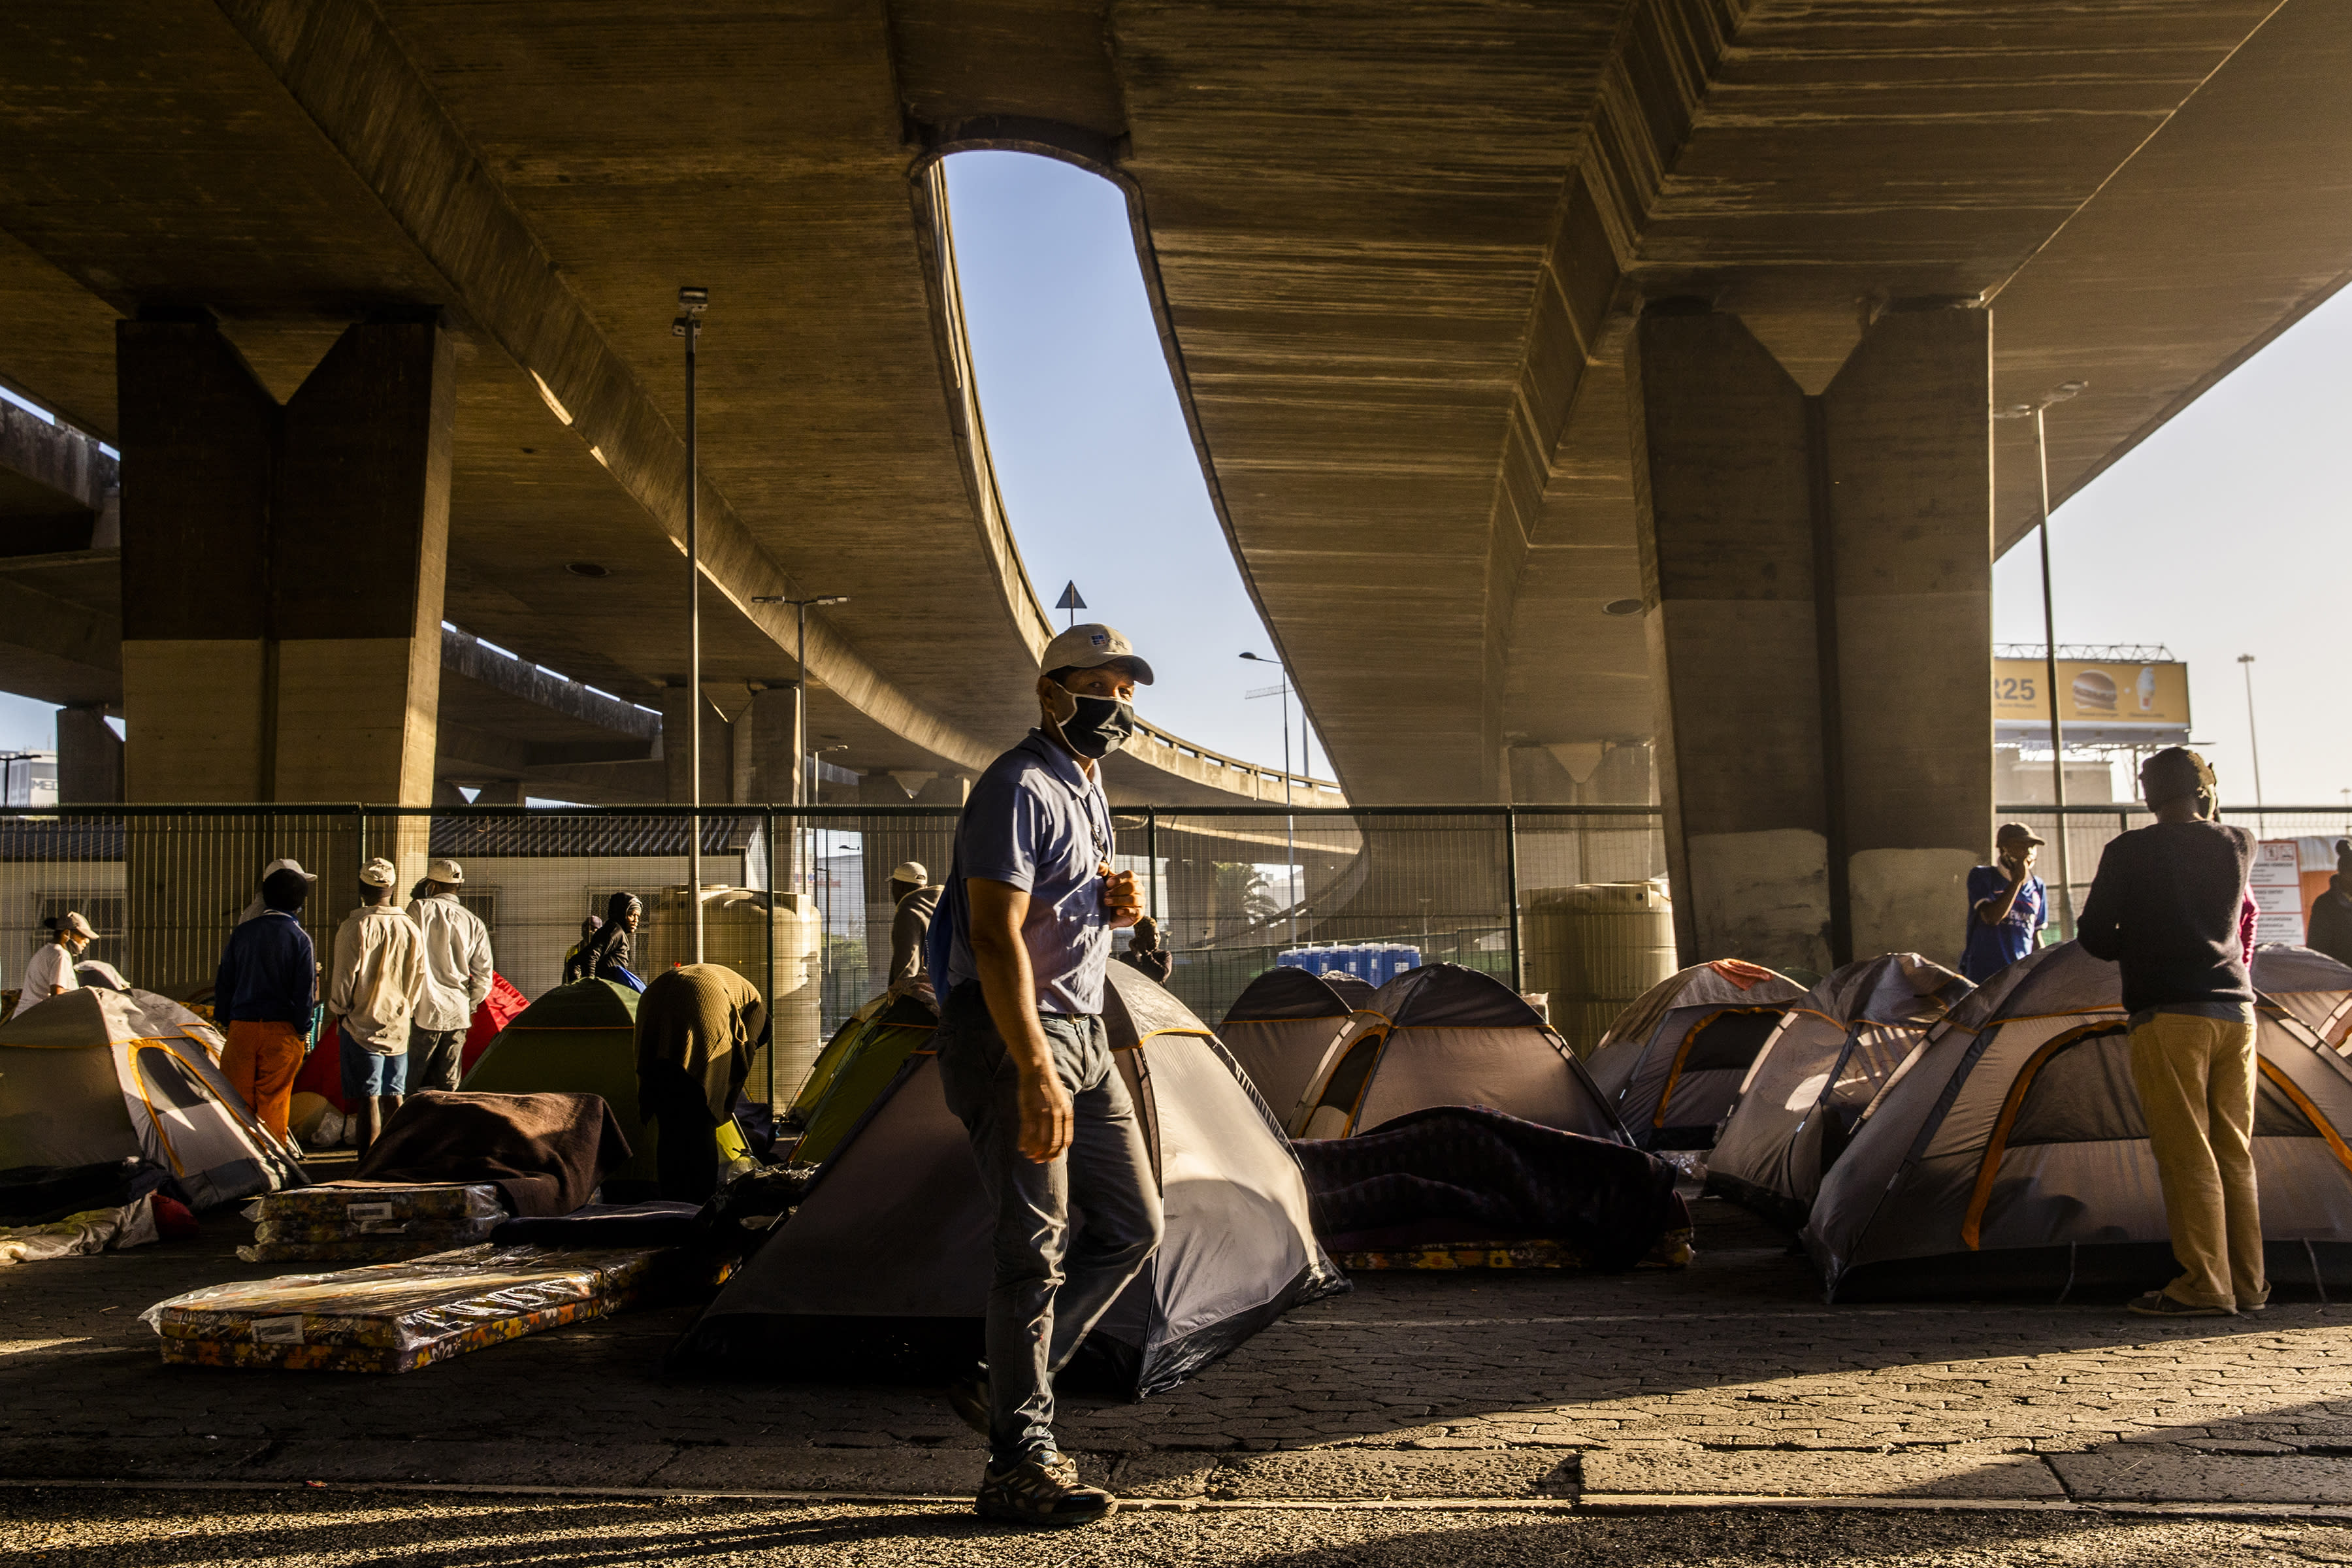 Homeless people living in tents under a bridge in Cape Town, South Africa, Friday, May 22, 2020, after being transported from a closed shelter to another unfinished shelter. (AP Photo)